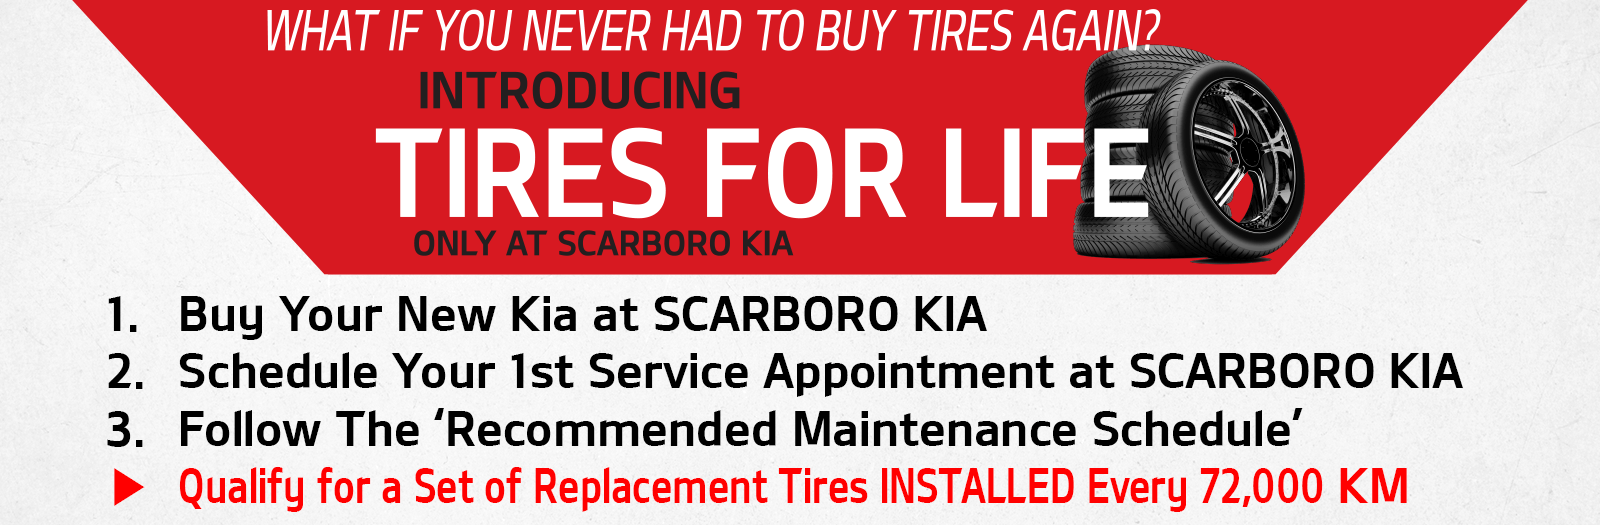 Tires For Life Scarboro Kia